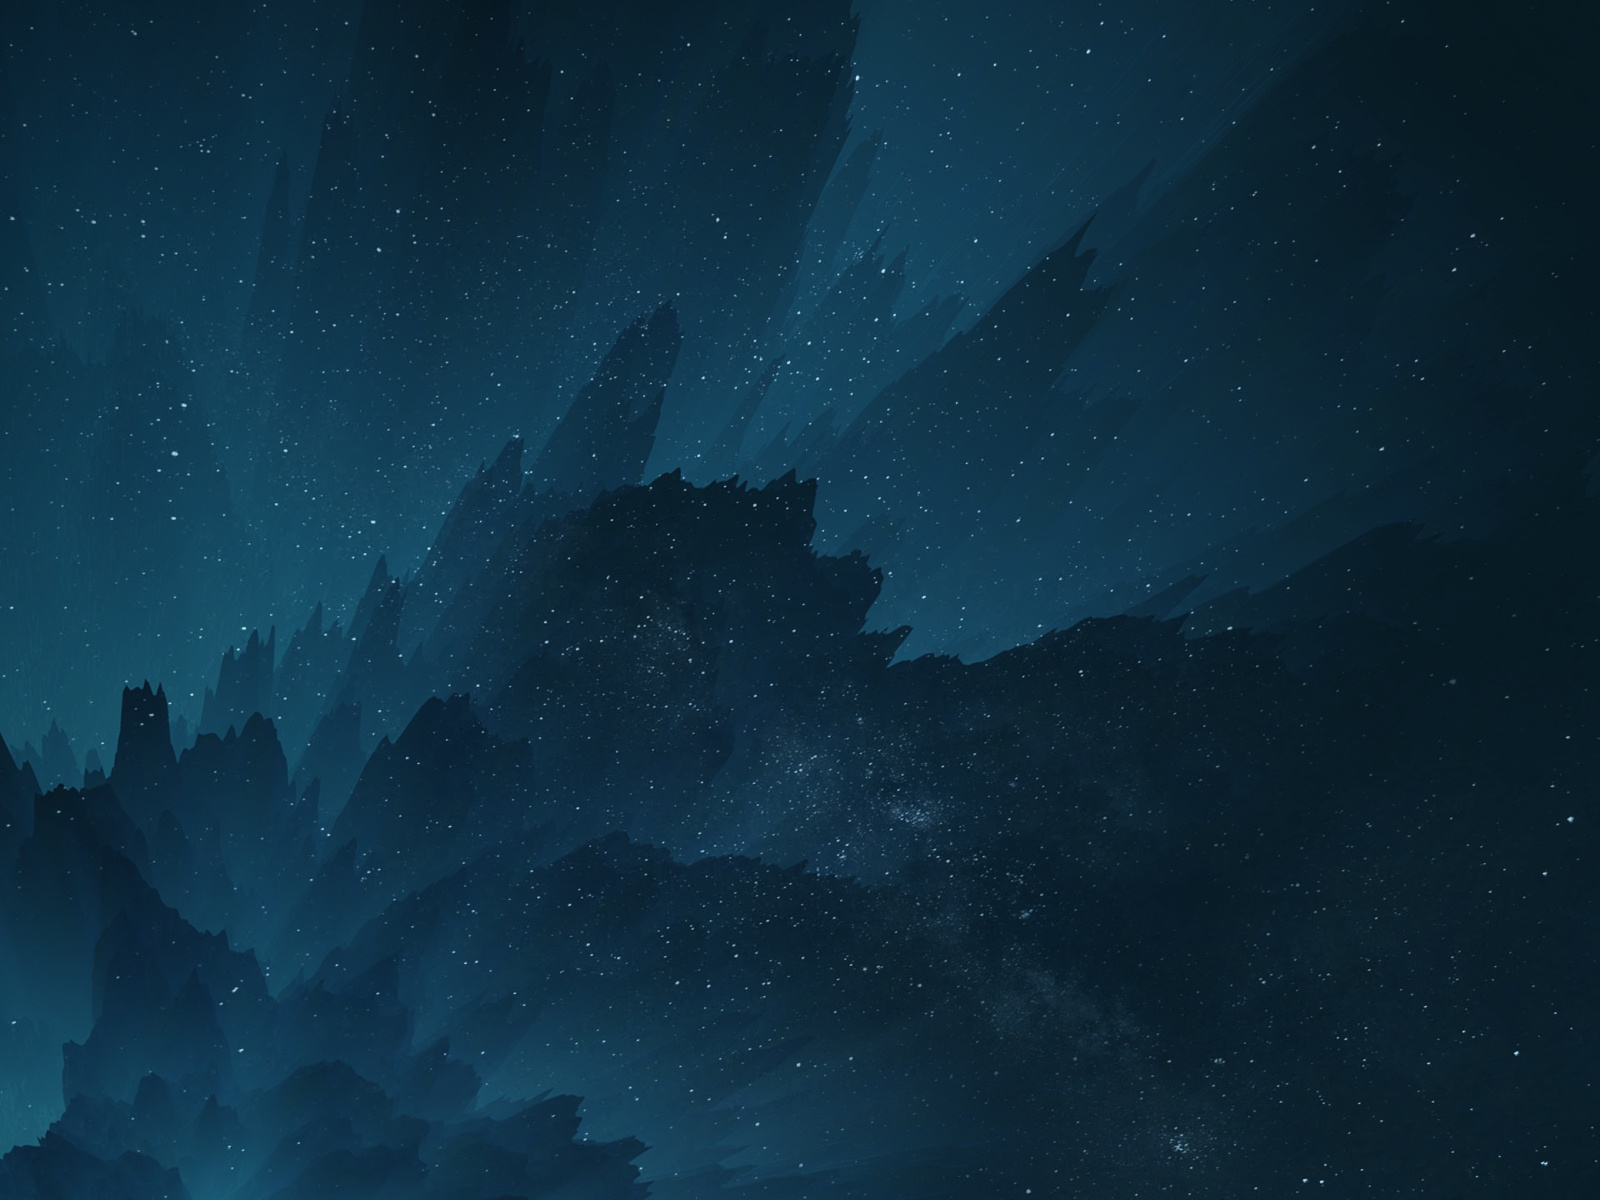 Abstract Space Wallpaper By Arthur Lambillotte On Dribbble